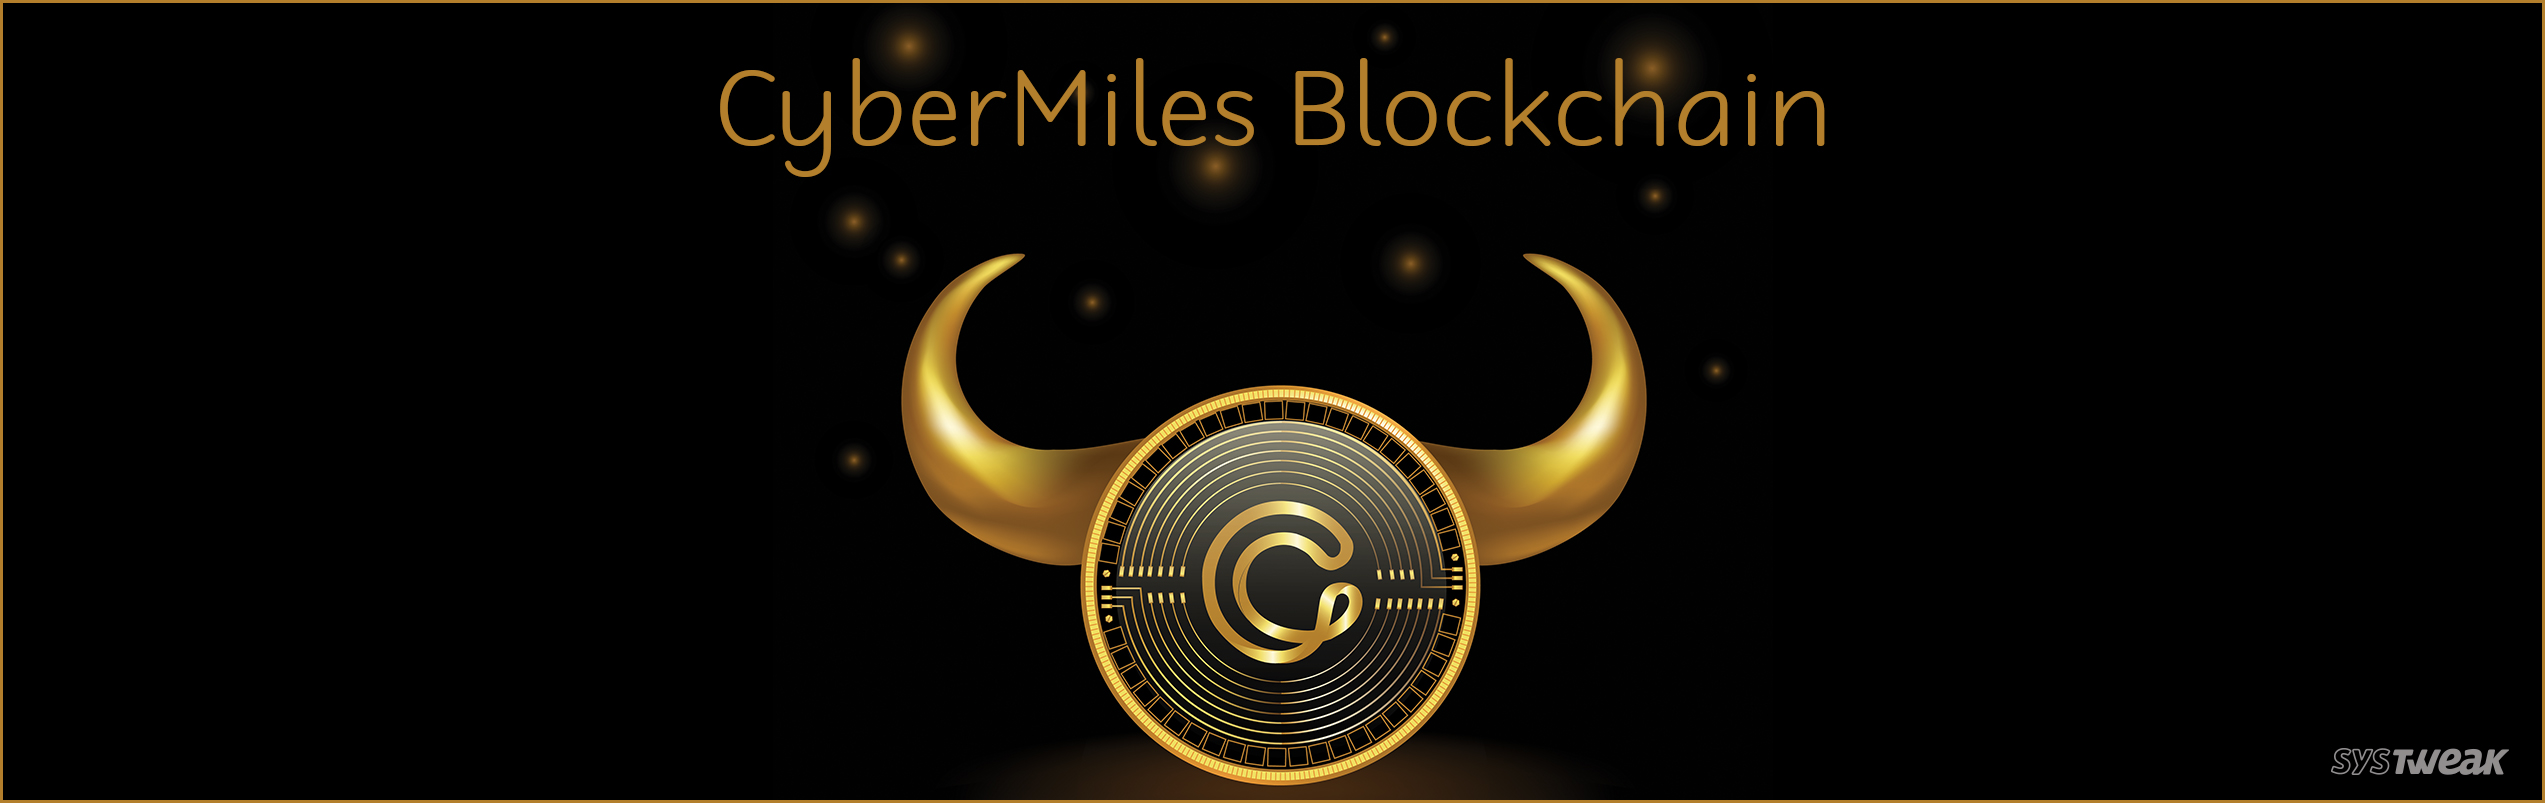 Everything You Need To Know About CyberMiles